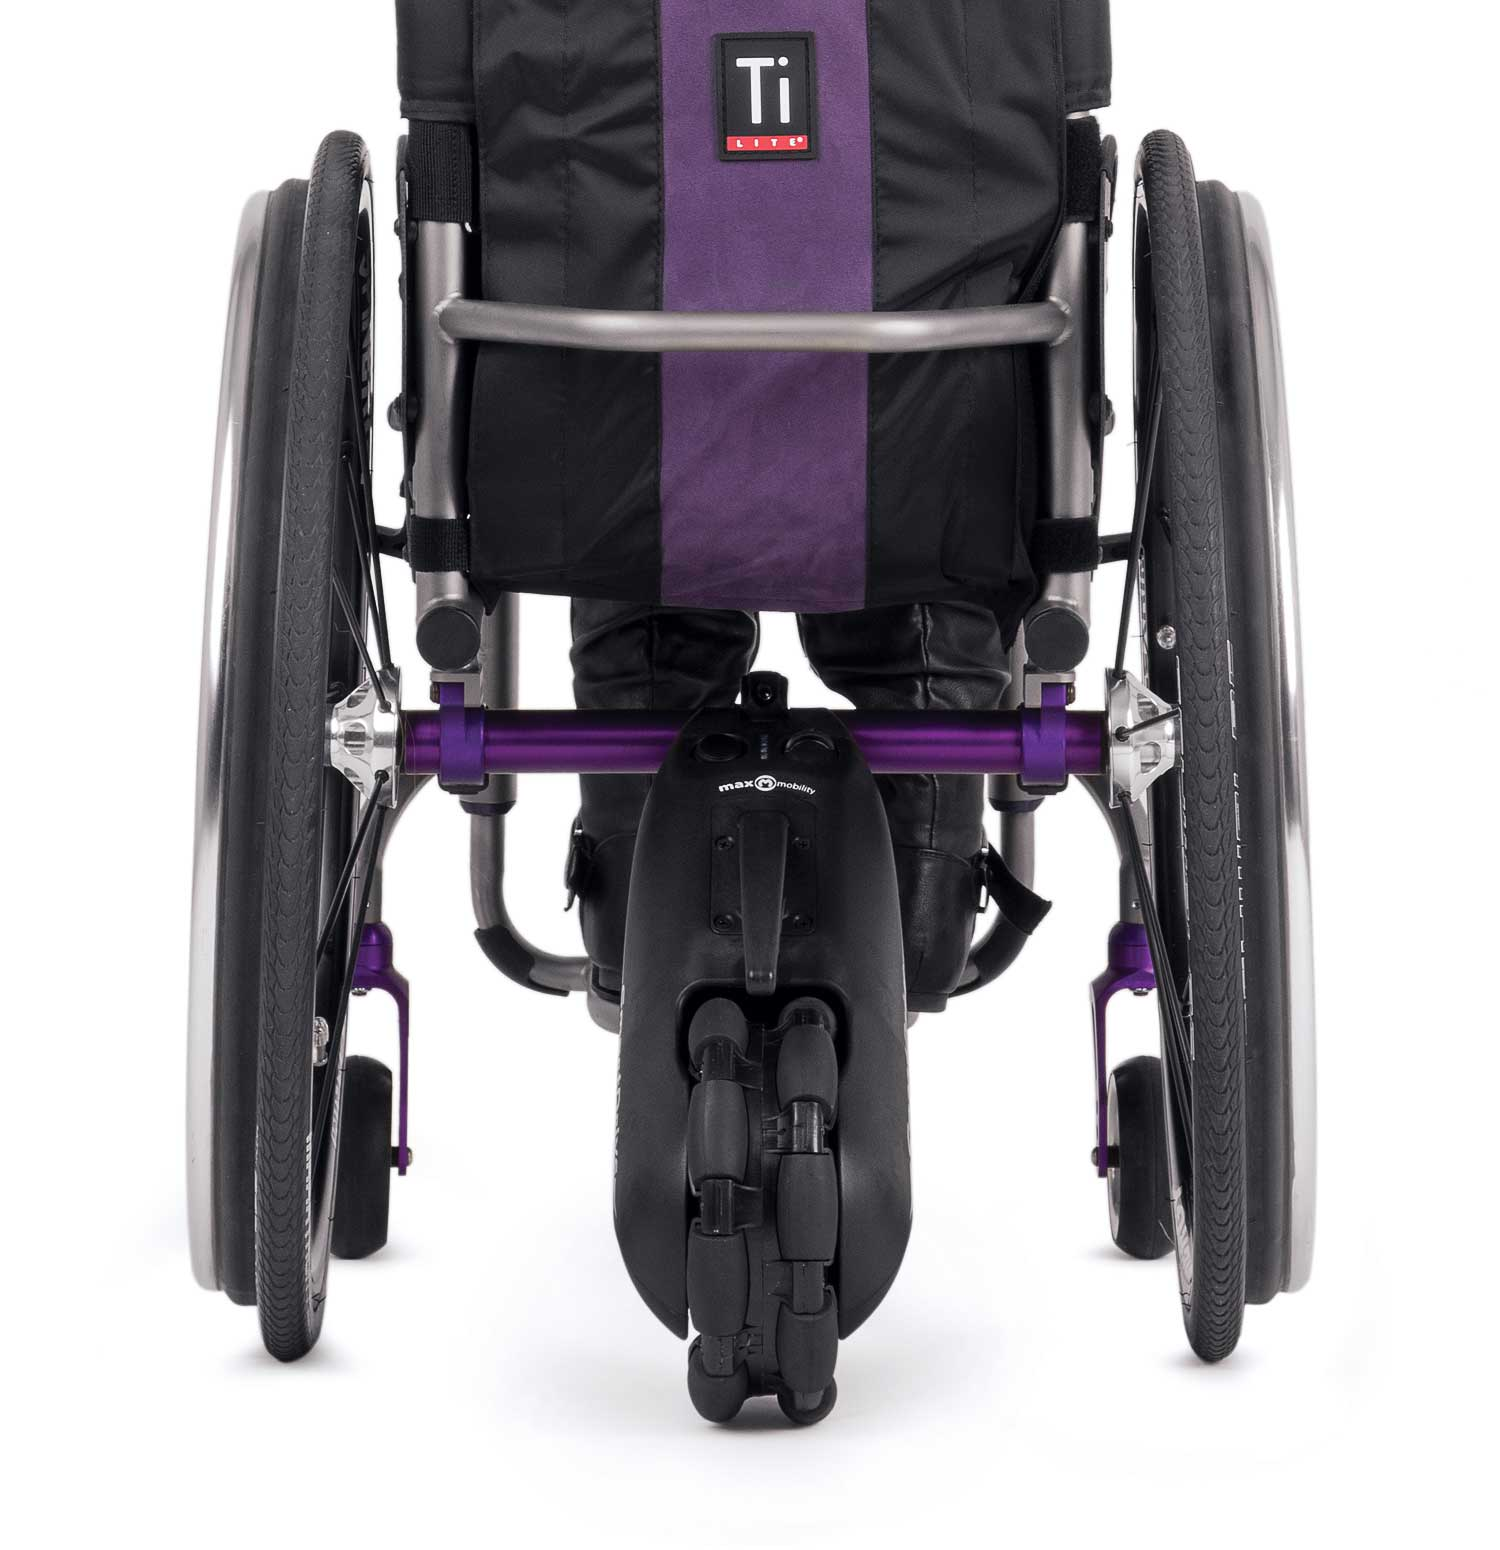 Smartdrive mx2+ wheelchair power assist with pushtracker | living.